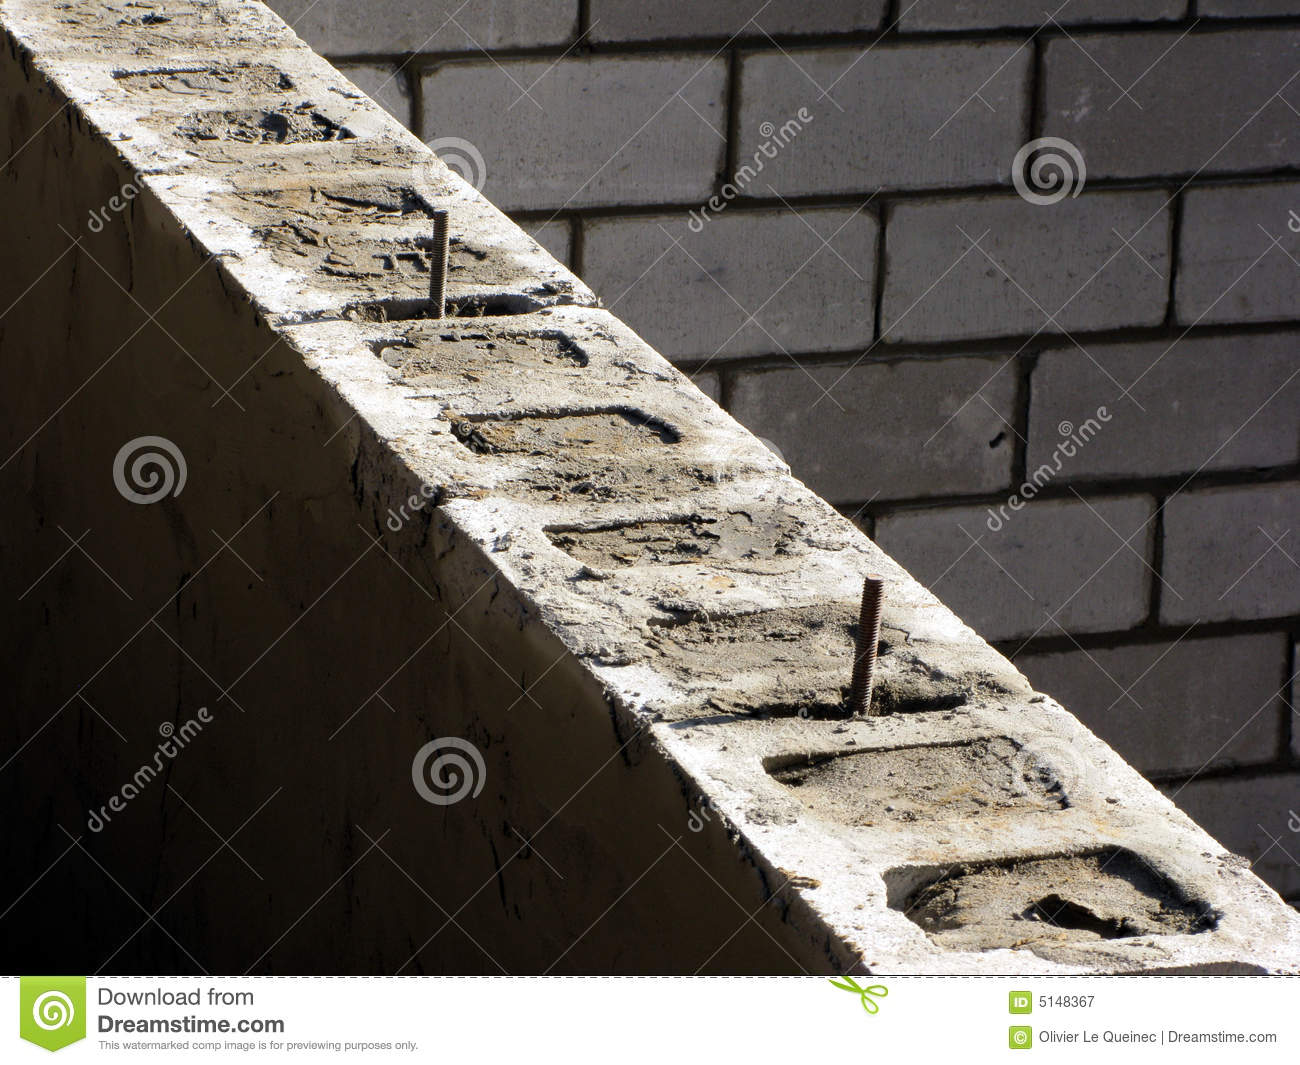 Cinder blocks house concrete foundation wall stock image for Cinder block house construction